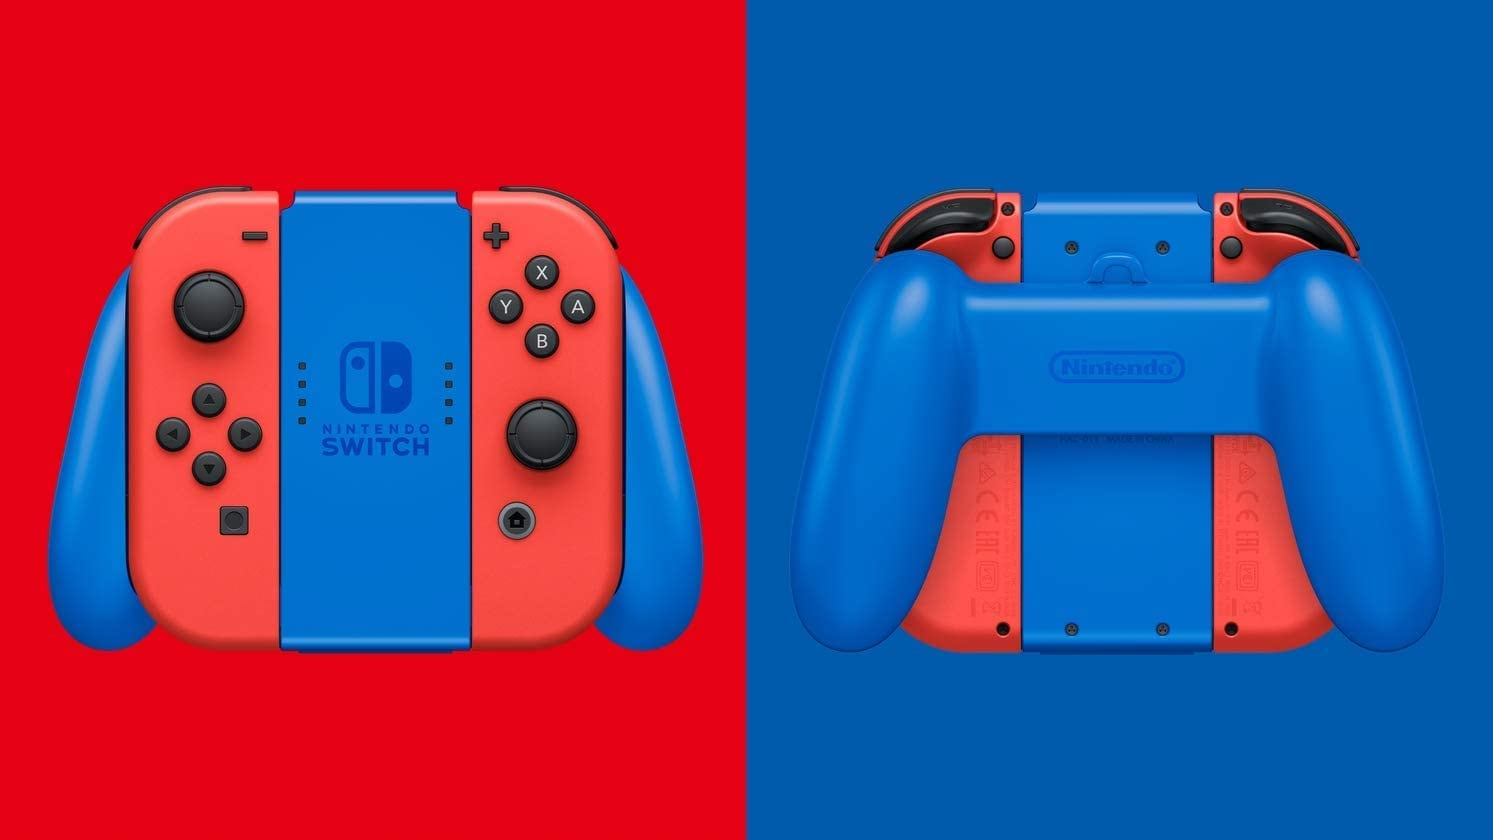 NINTENDO SWITCH CONSOLE - BLUE & RED MARIO 3D WORLDS & BOWSERS FURY EDITION Multi-Colored 32 GB Standard - 3